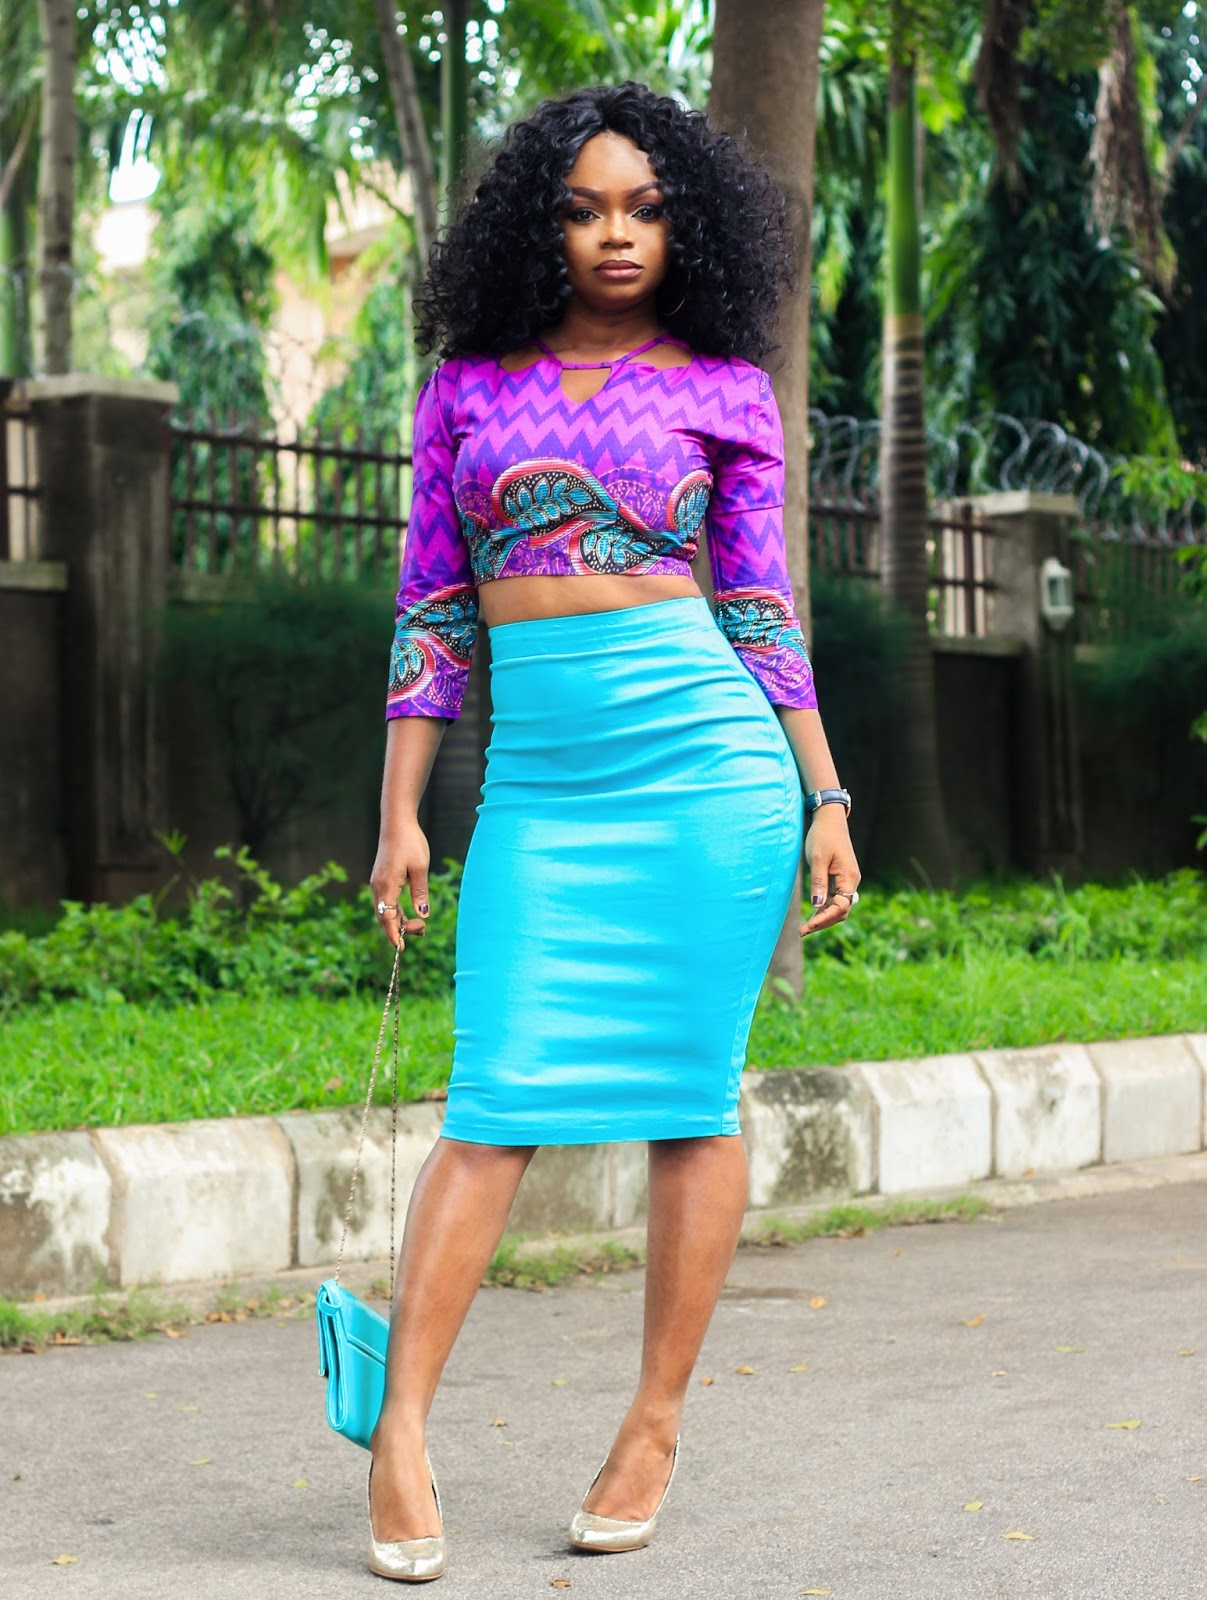 ANKARA & TEAL MIX - African Print Top with Teal colored Skirt and Purse